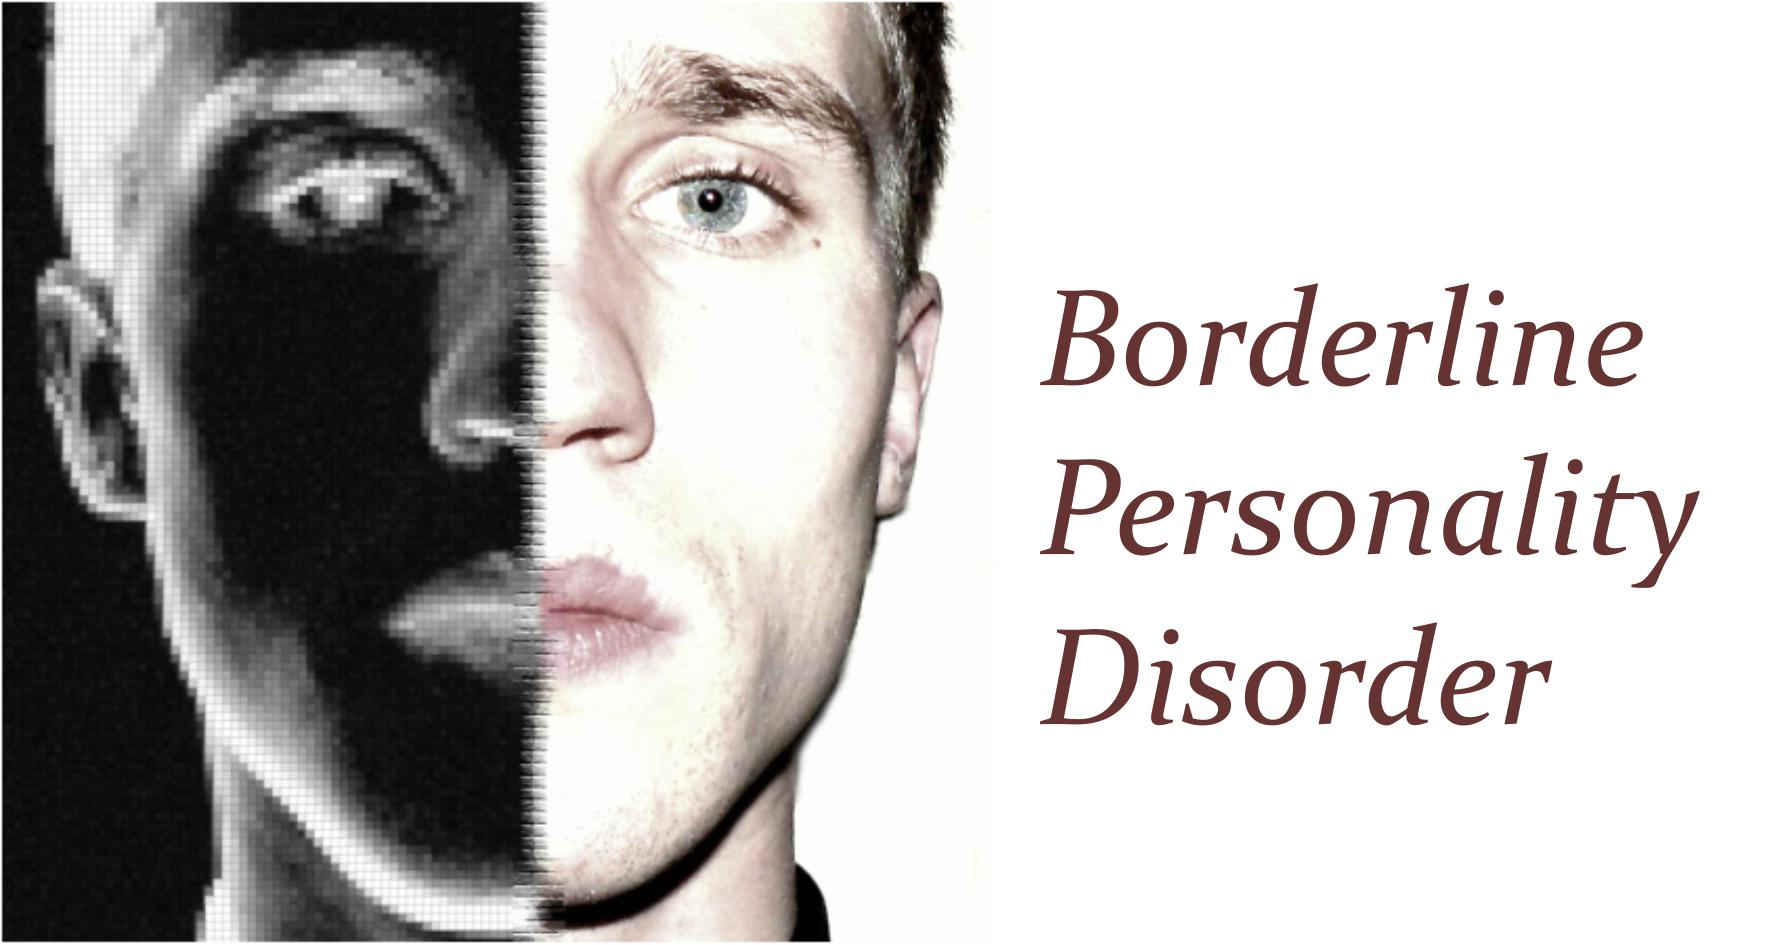 borderline-personality-disorder4